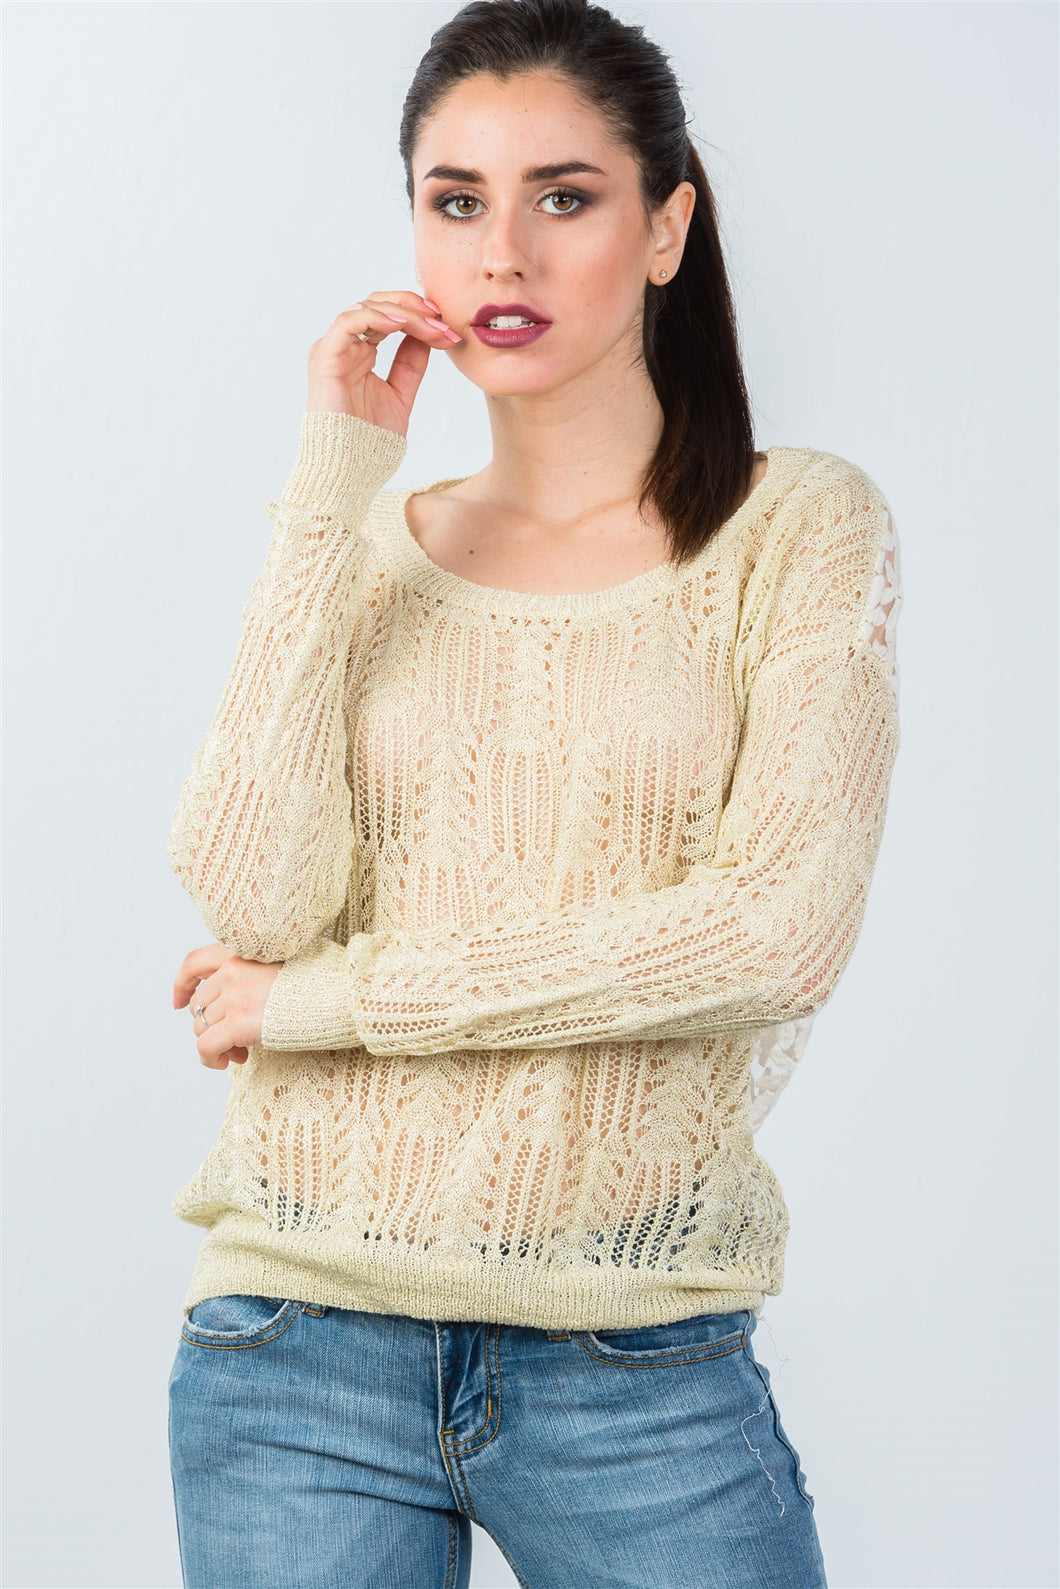 Ladies fashion beige crochet & flower embroidered mesh top - comfy-cozy18